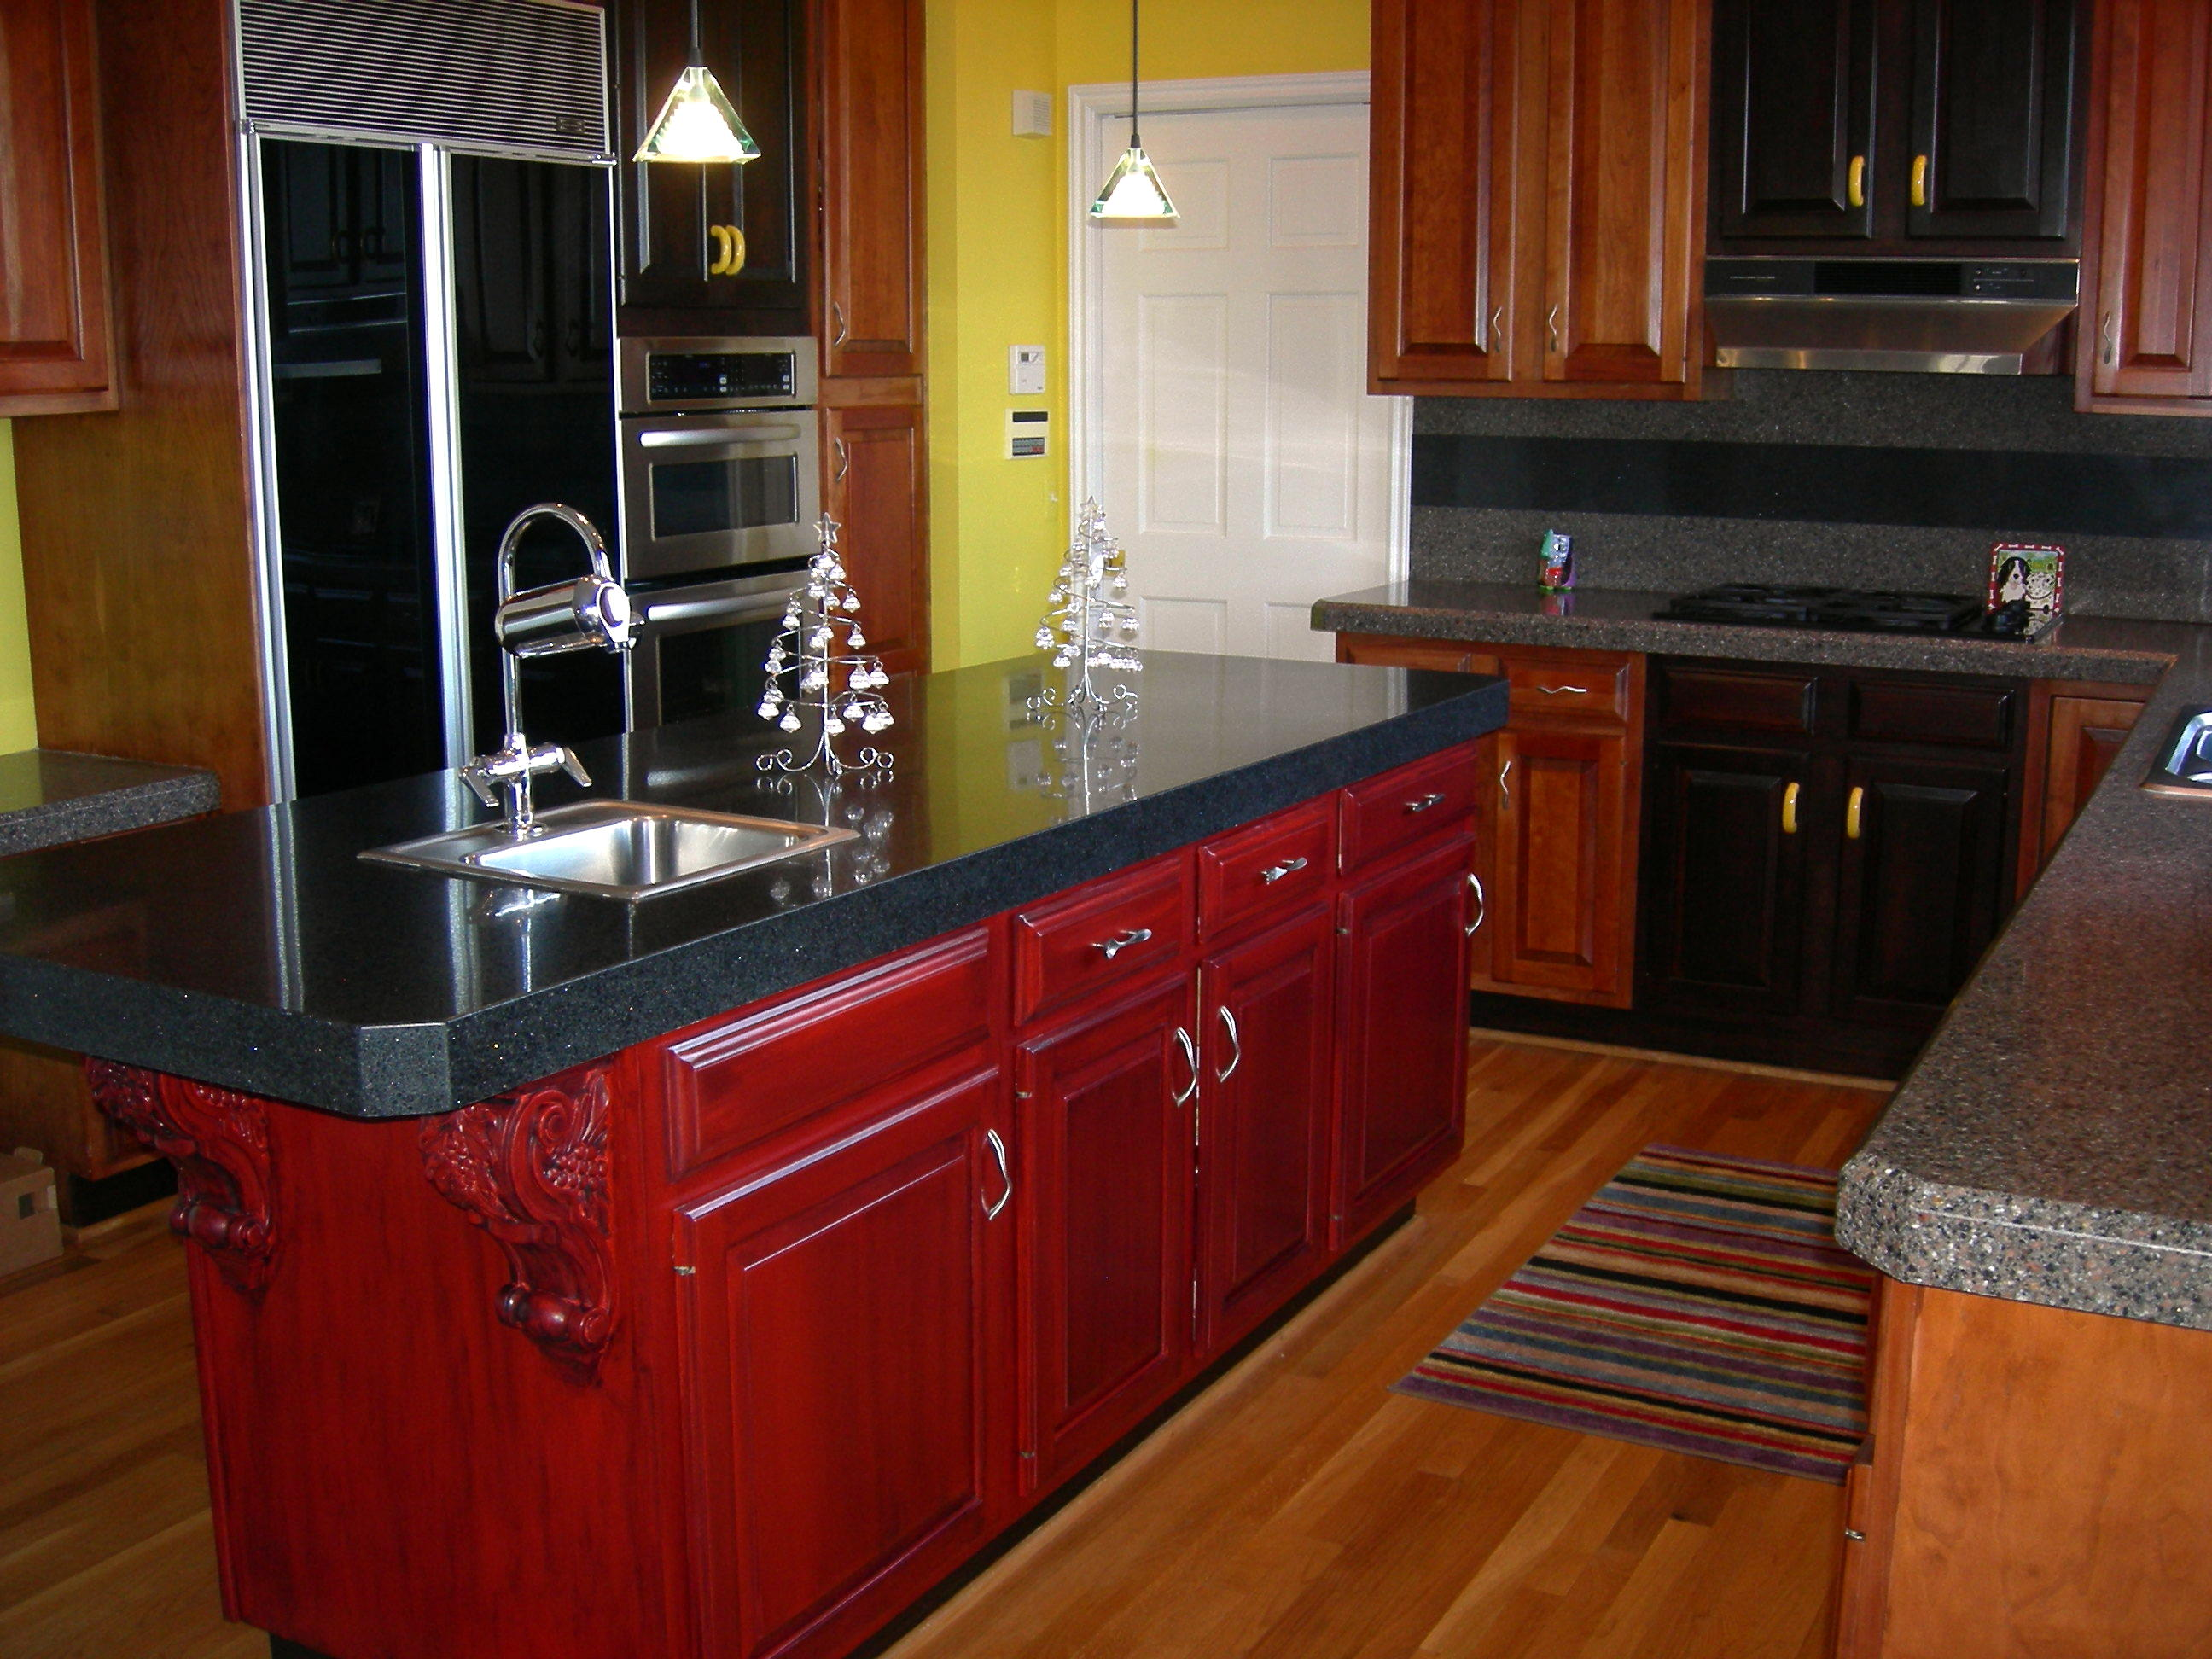 Refinishing cabinets a simple do it yourself task for 70s style kitchen cabinets